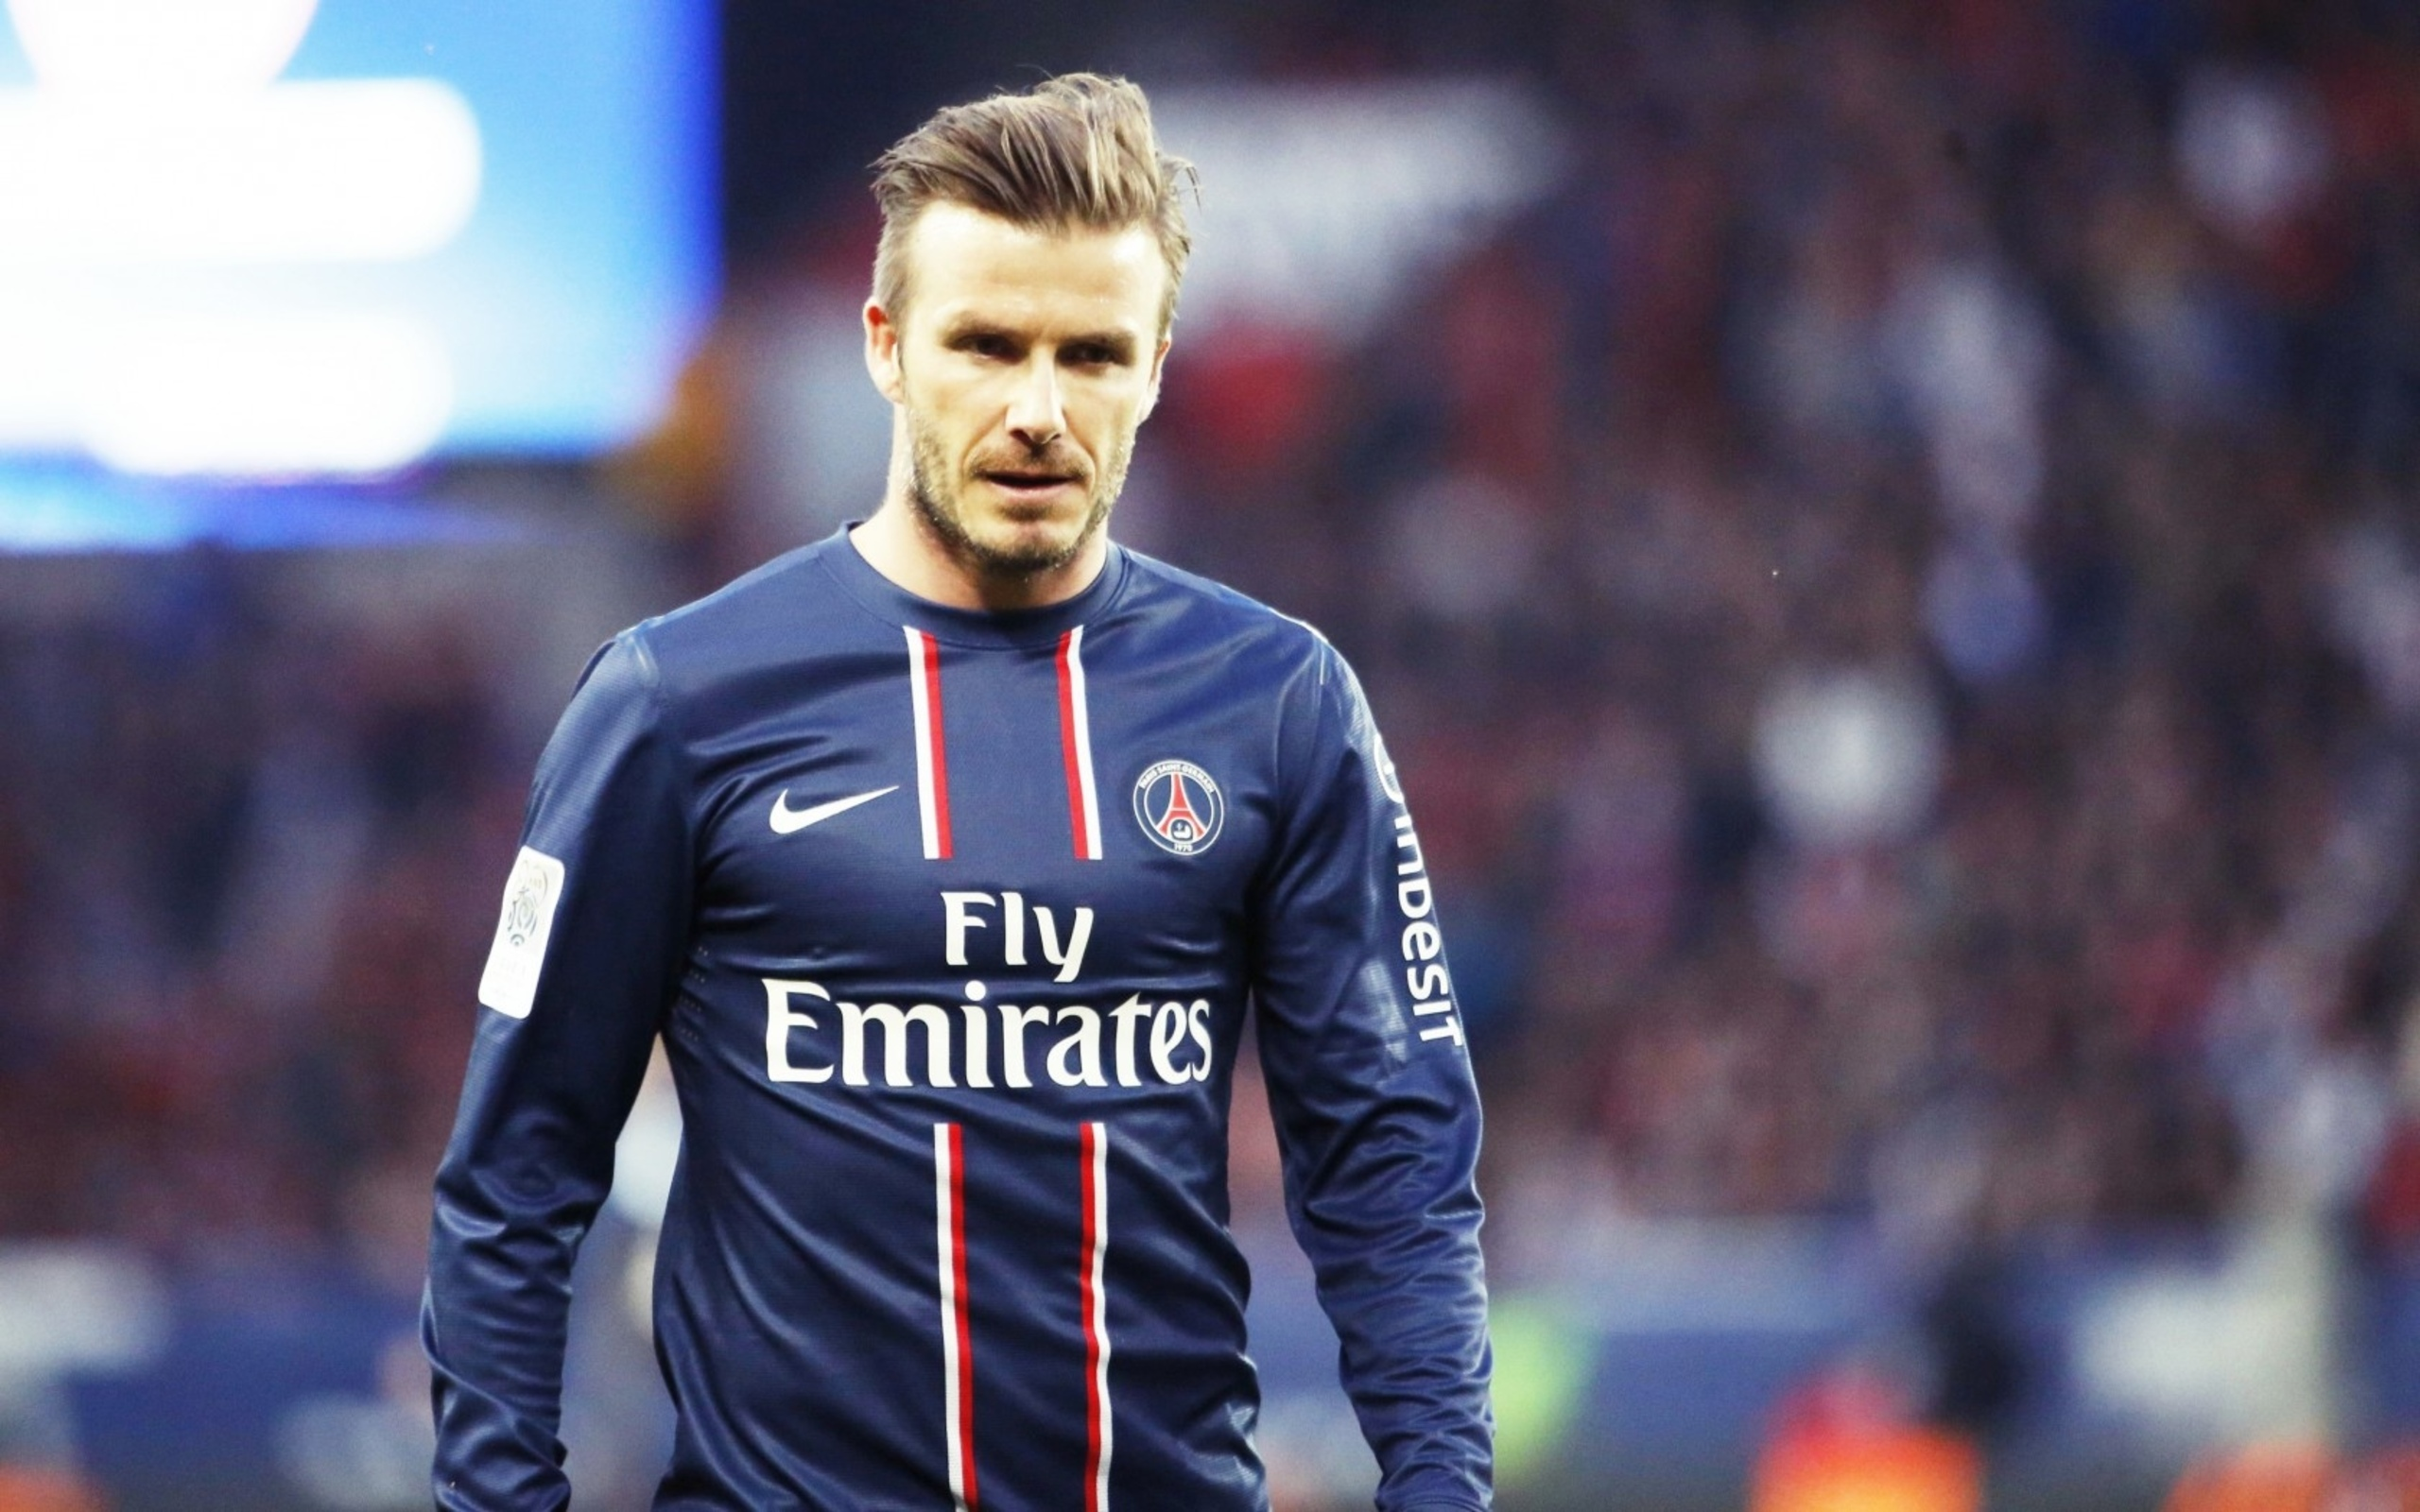 David beckham new hd pictures wallpapers 2015 all hd - David beckham ...